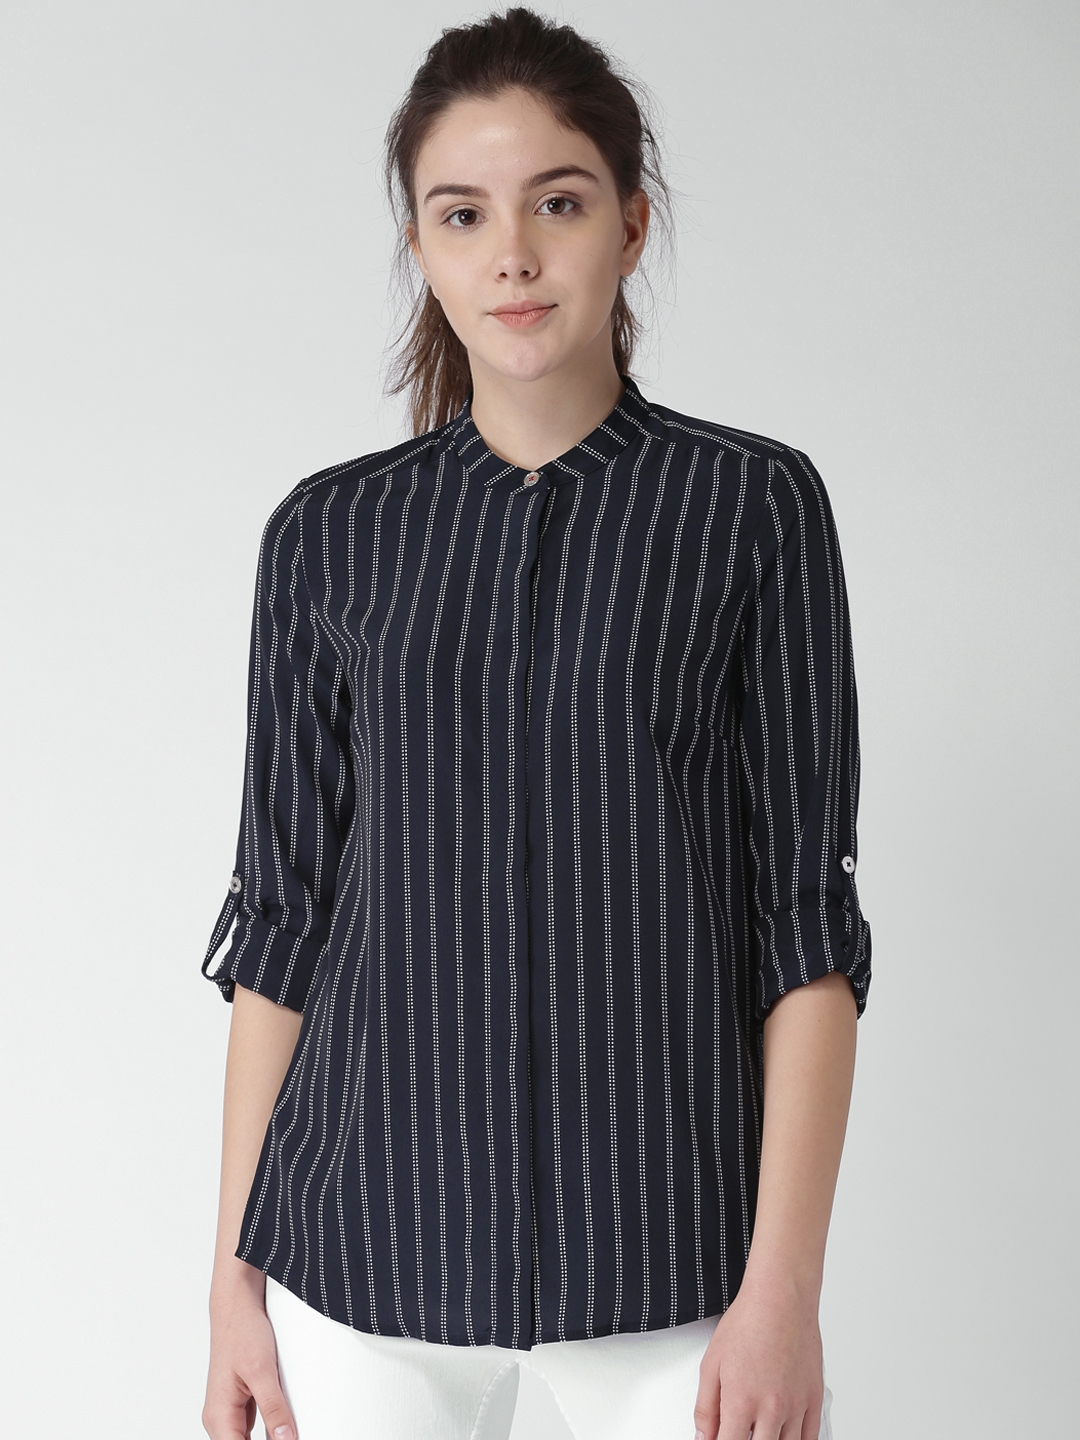 f59a1d91329 Buy Tommy Hilfiger Women Navy Blue Striped Shirt Style Top - Tops ...